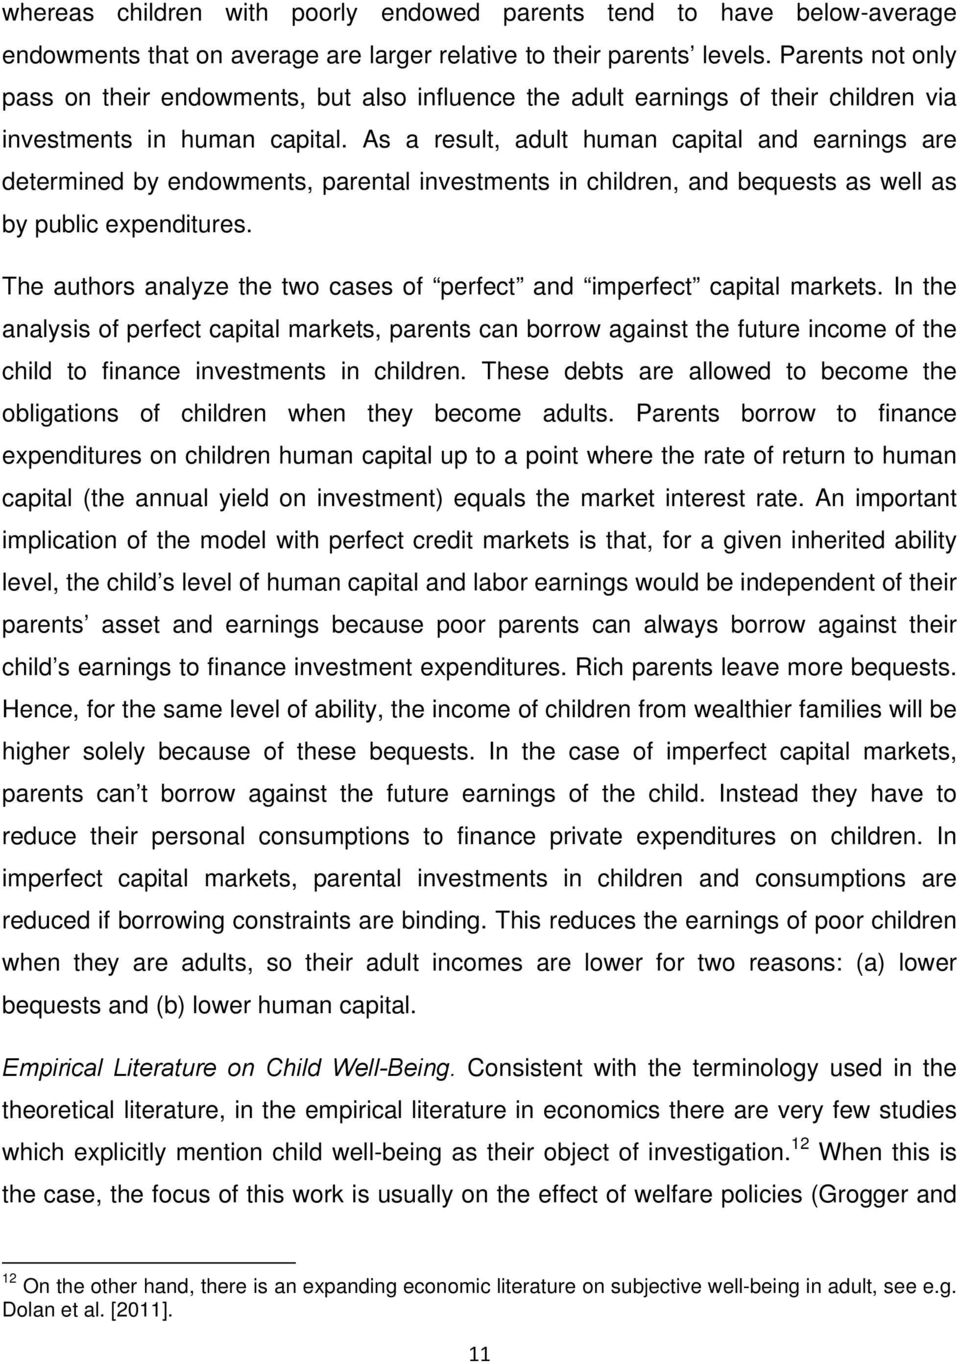 As a result, adult human capital and earnings are determined by endowments, parental investments in children, and bequests as well as by public expenditures.